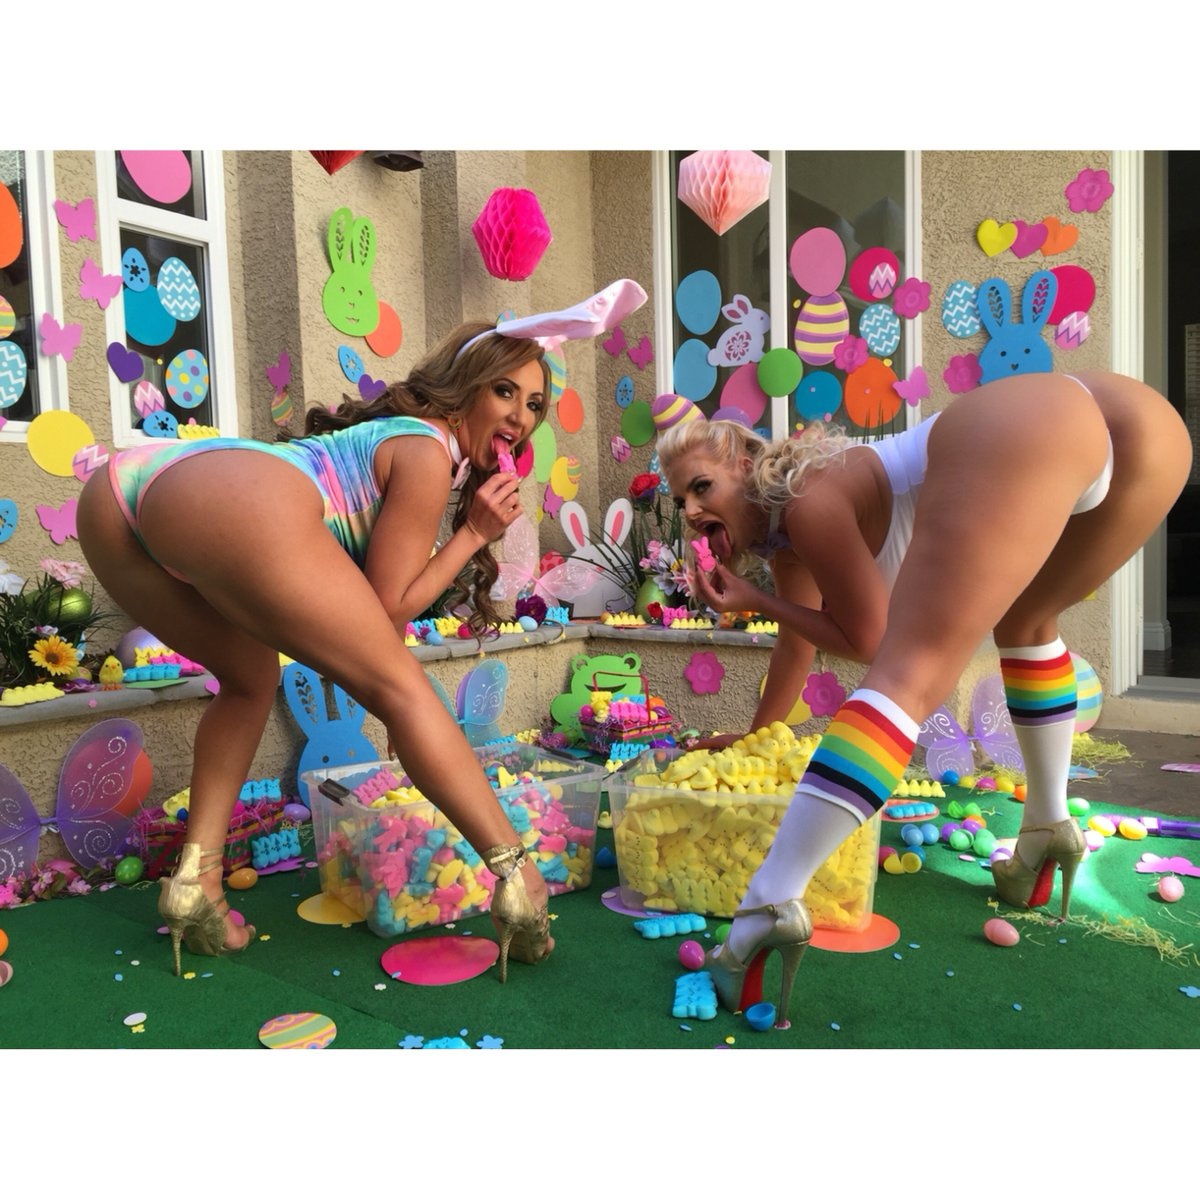 It really is Good Friday when mine and new scene drops ;) Check it Out! Hoppy